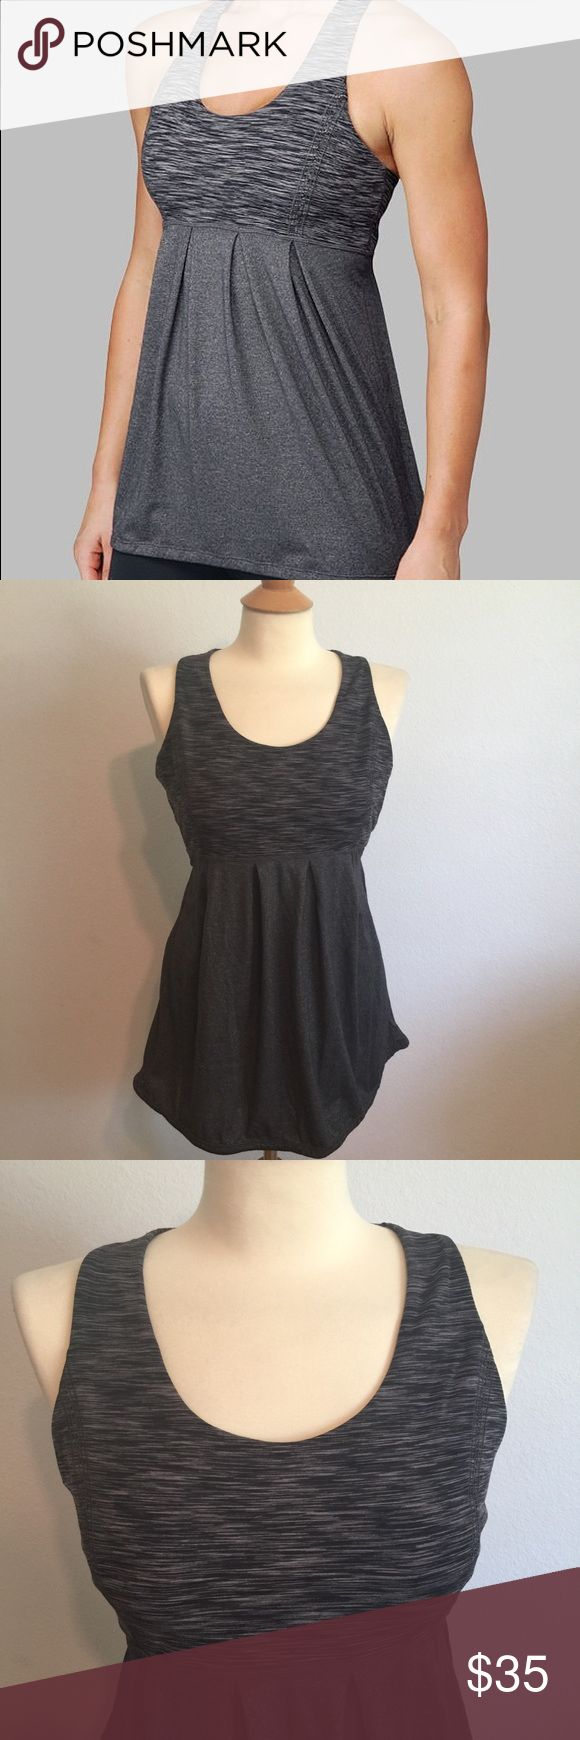 Lululemon Power Dance Gray Tank Built in Bra 12 Amazing tank by lululemon! This is the power dance Tank but is also great for running and yoga! It has a built in compression bra top and then a flowing body with drawstring bottom. This is great for yoga when doing inversions! Gently used, great condition. Size 12 lululemon athletica Tops Tank Tops